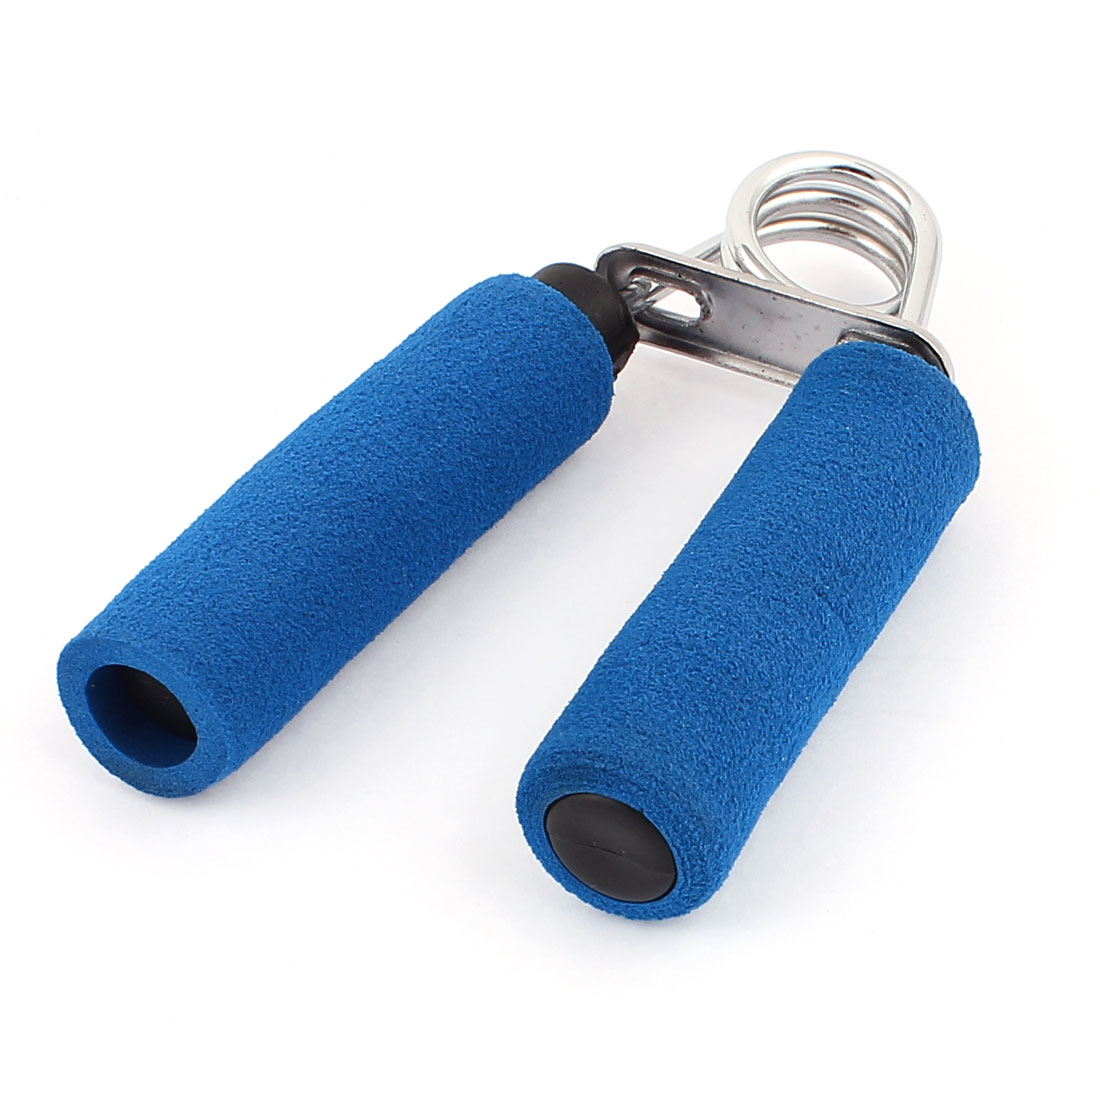 Foam Handle Strength Exerciser Hand Grippers Forearm Grips Tool Dark Blue